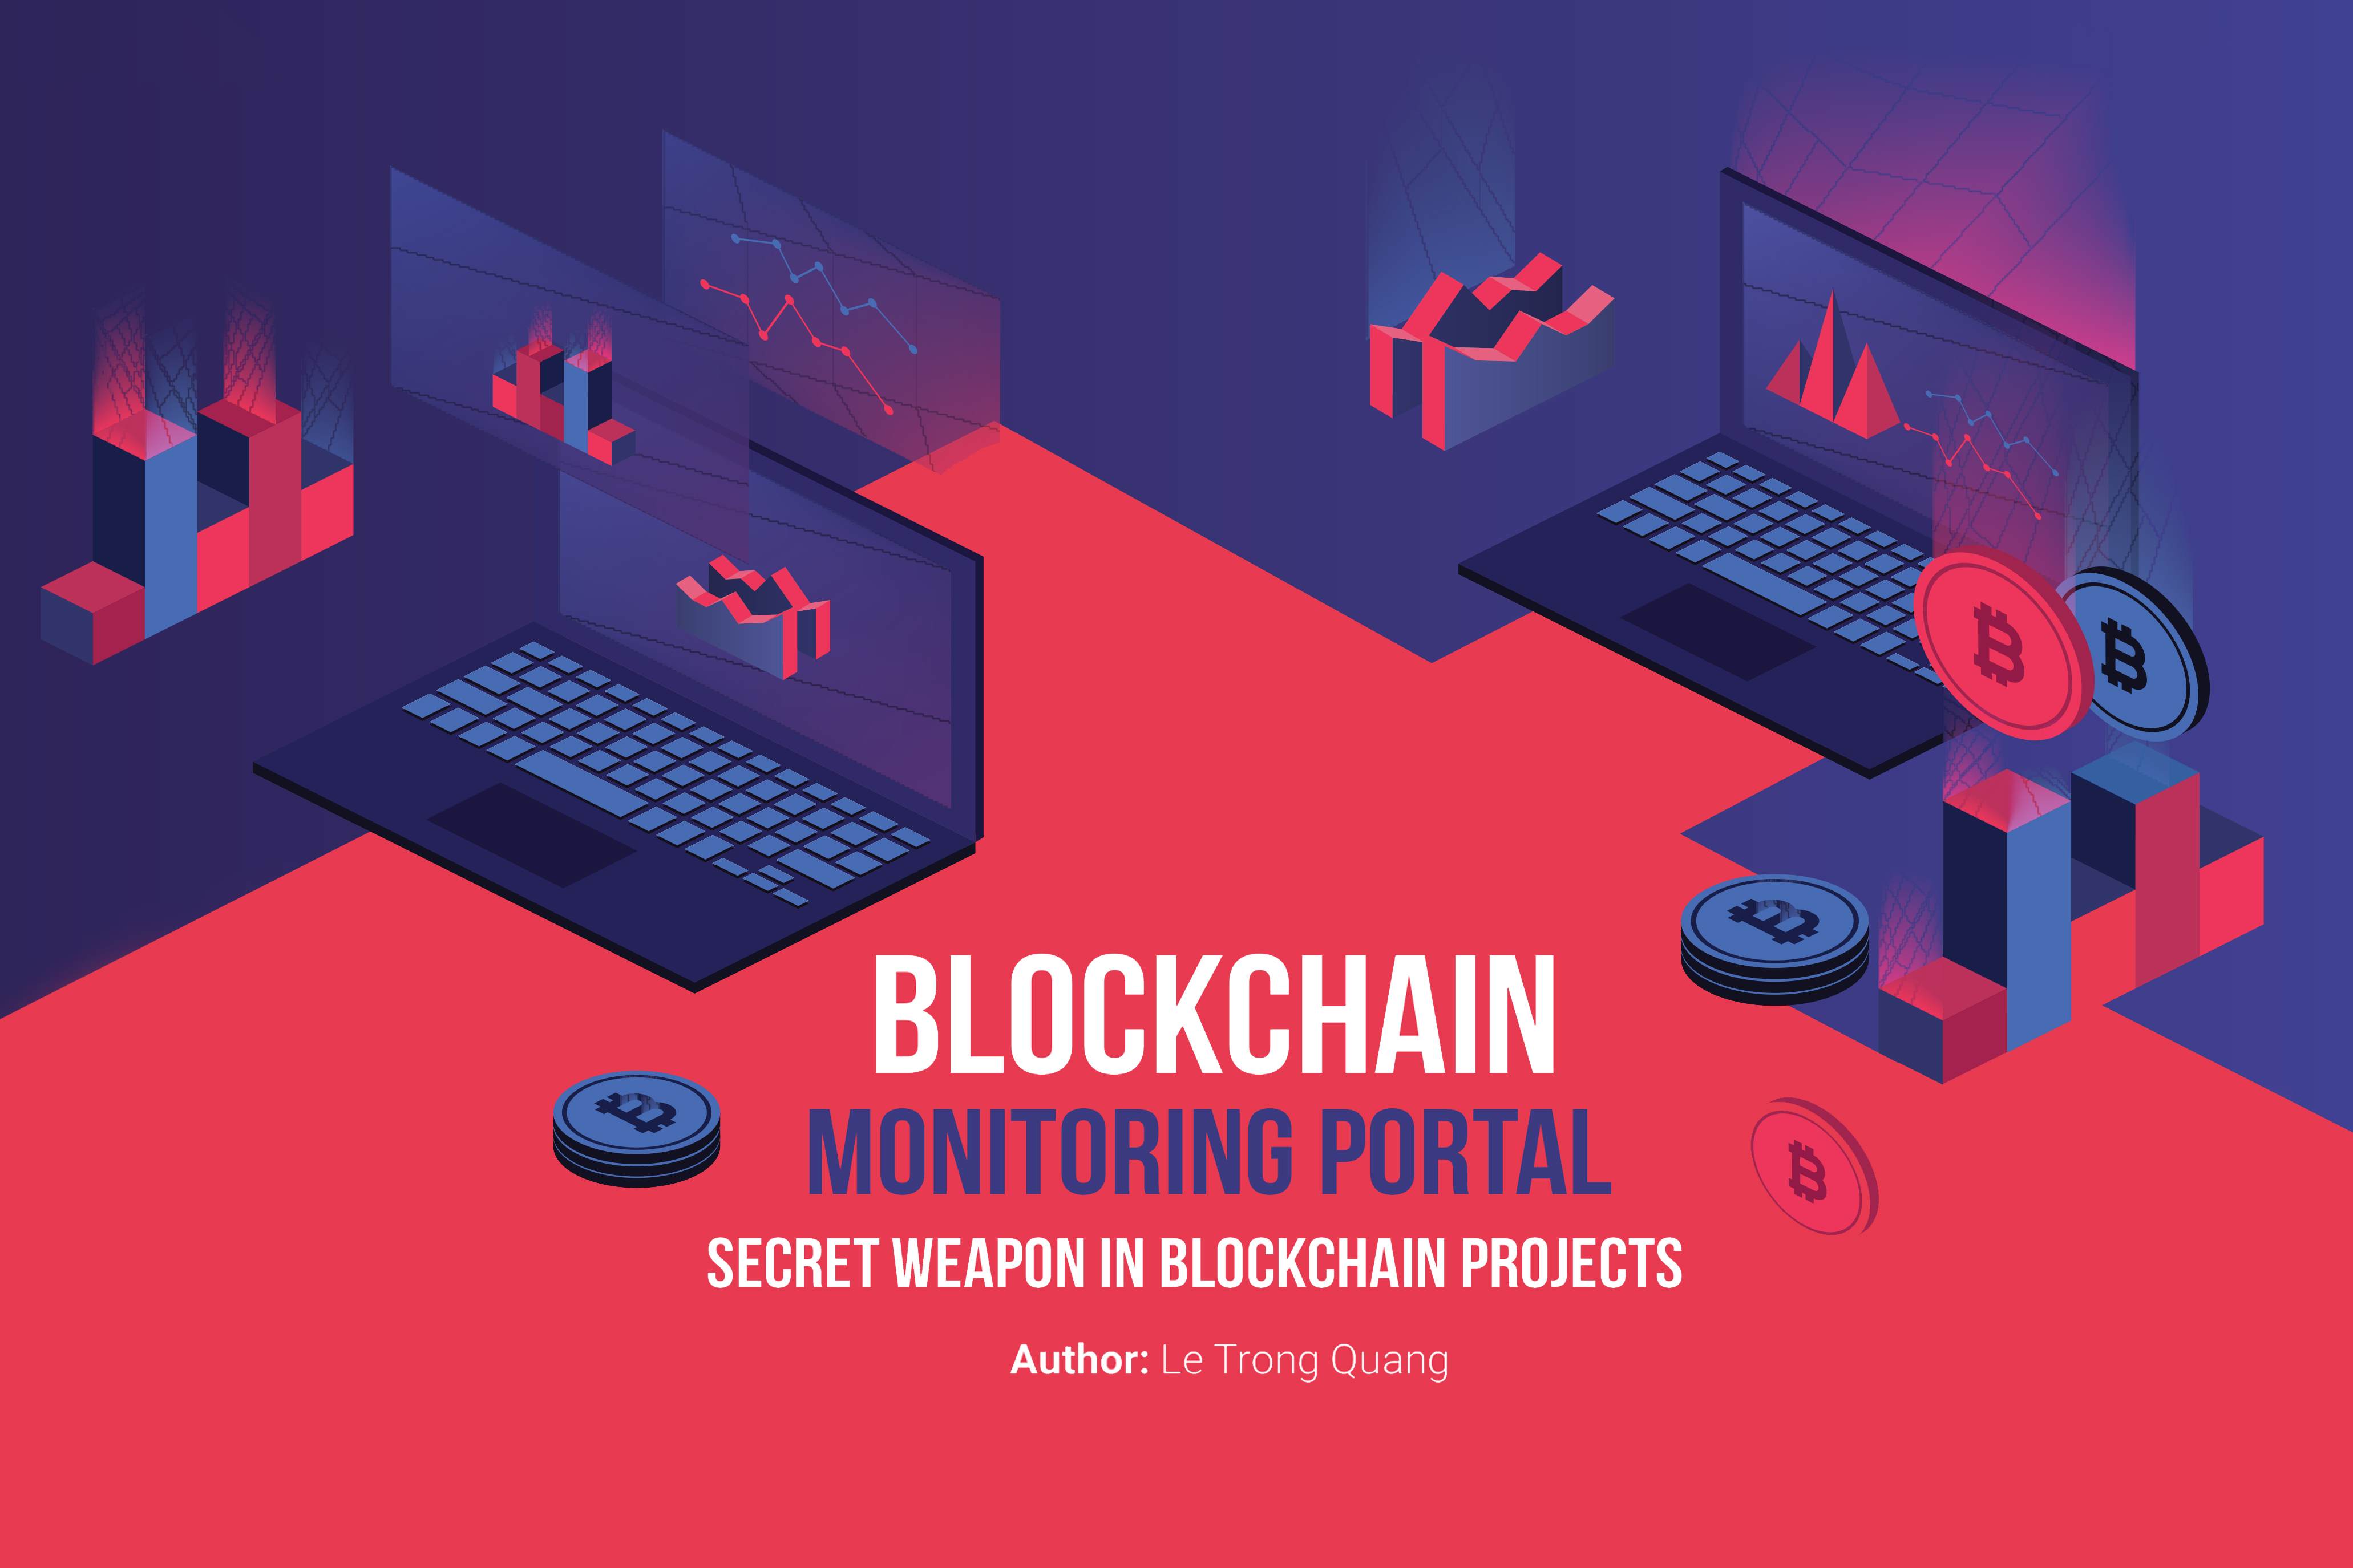 Blockchain Monitoring Portal: Secret weapon in Blockchain projects